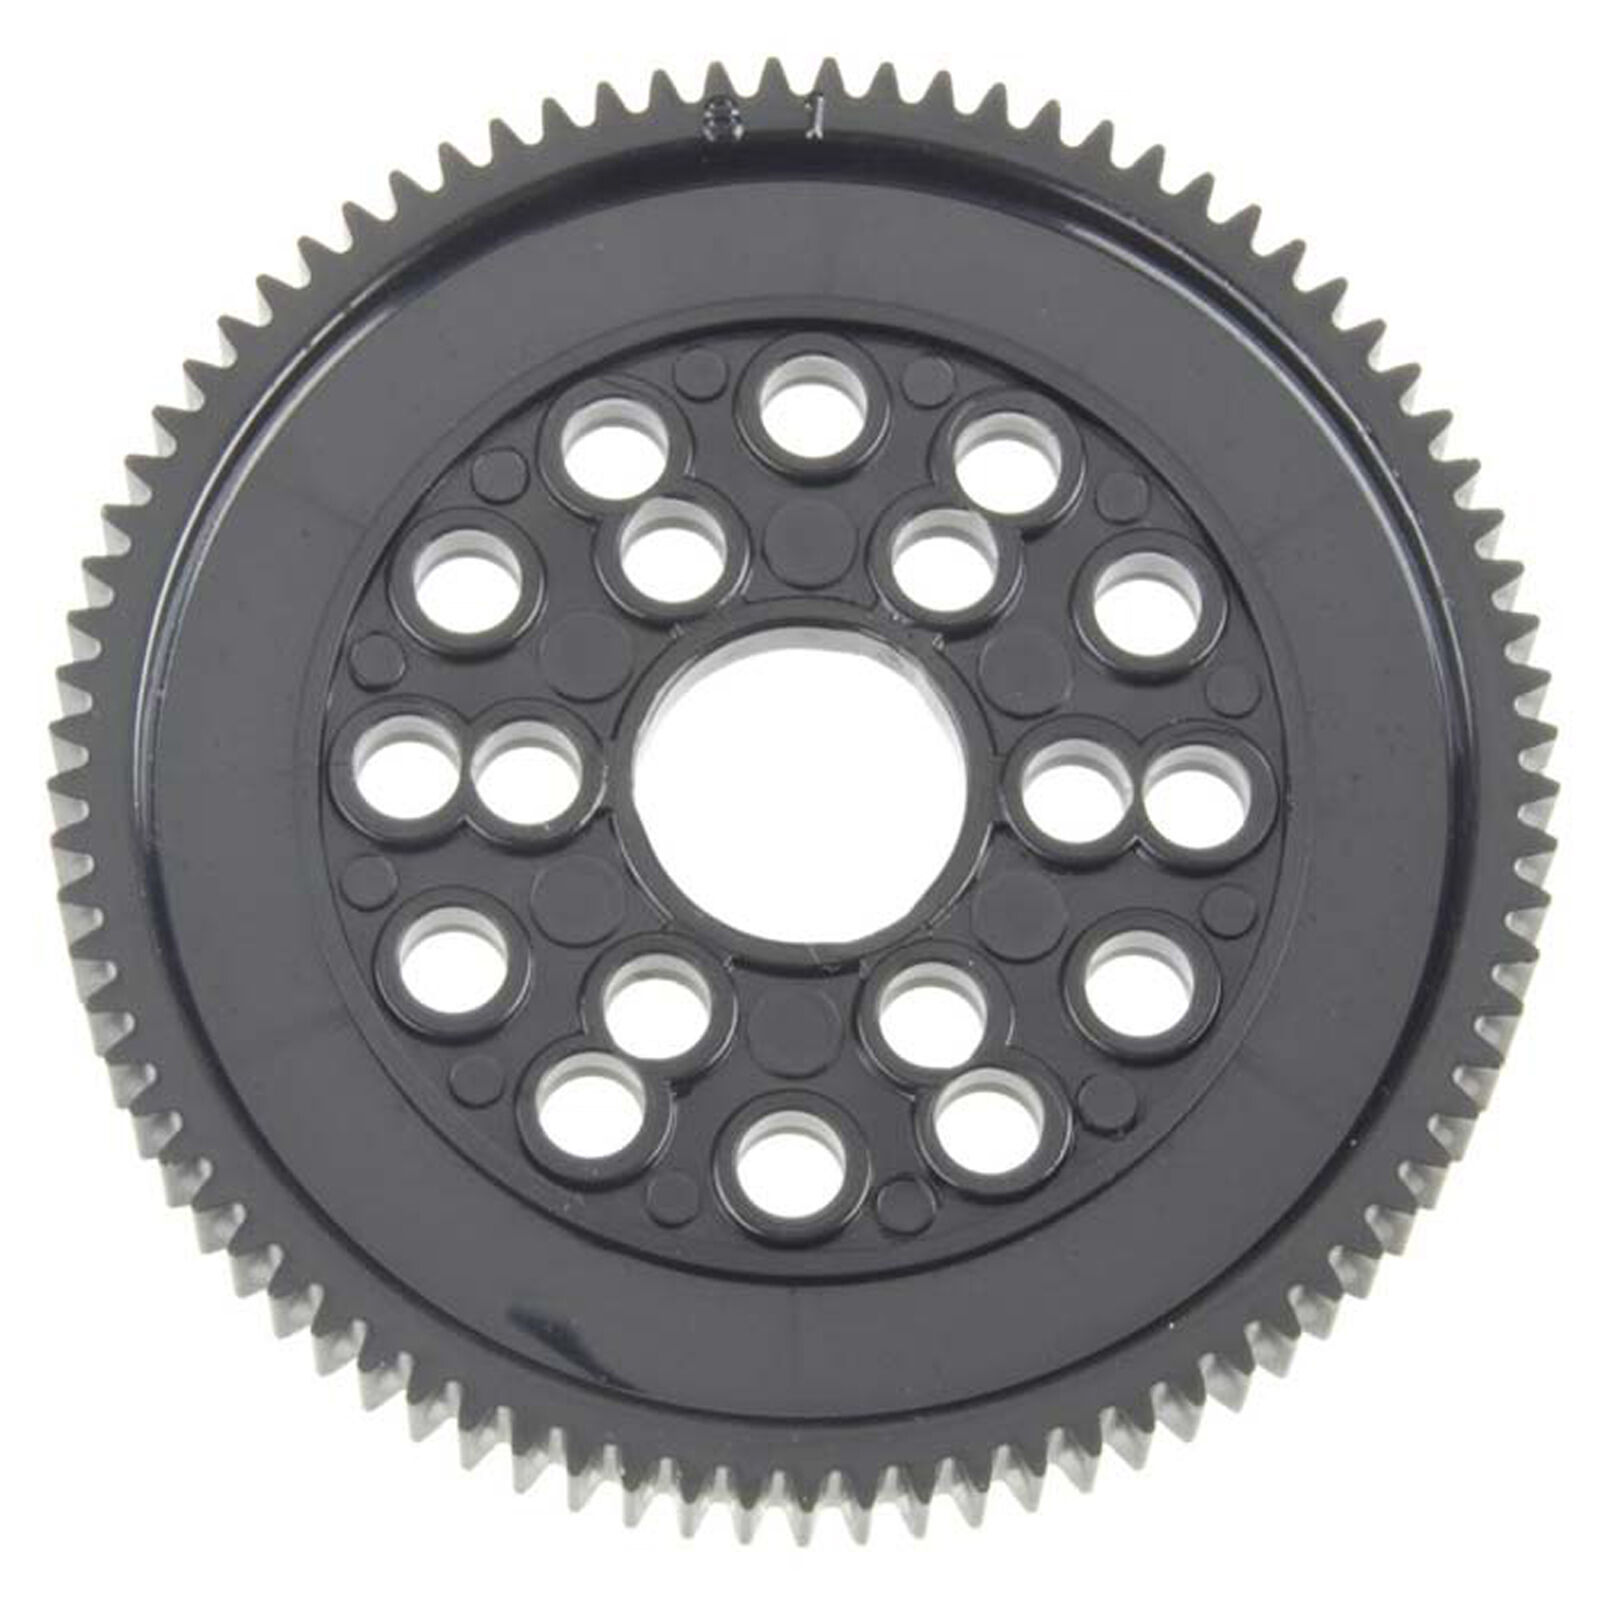 Diff Gear, 81-Tooth